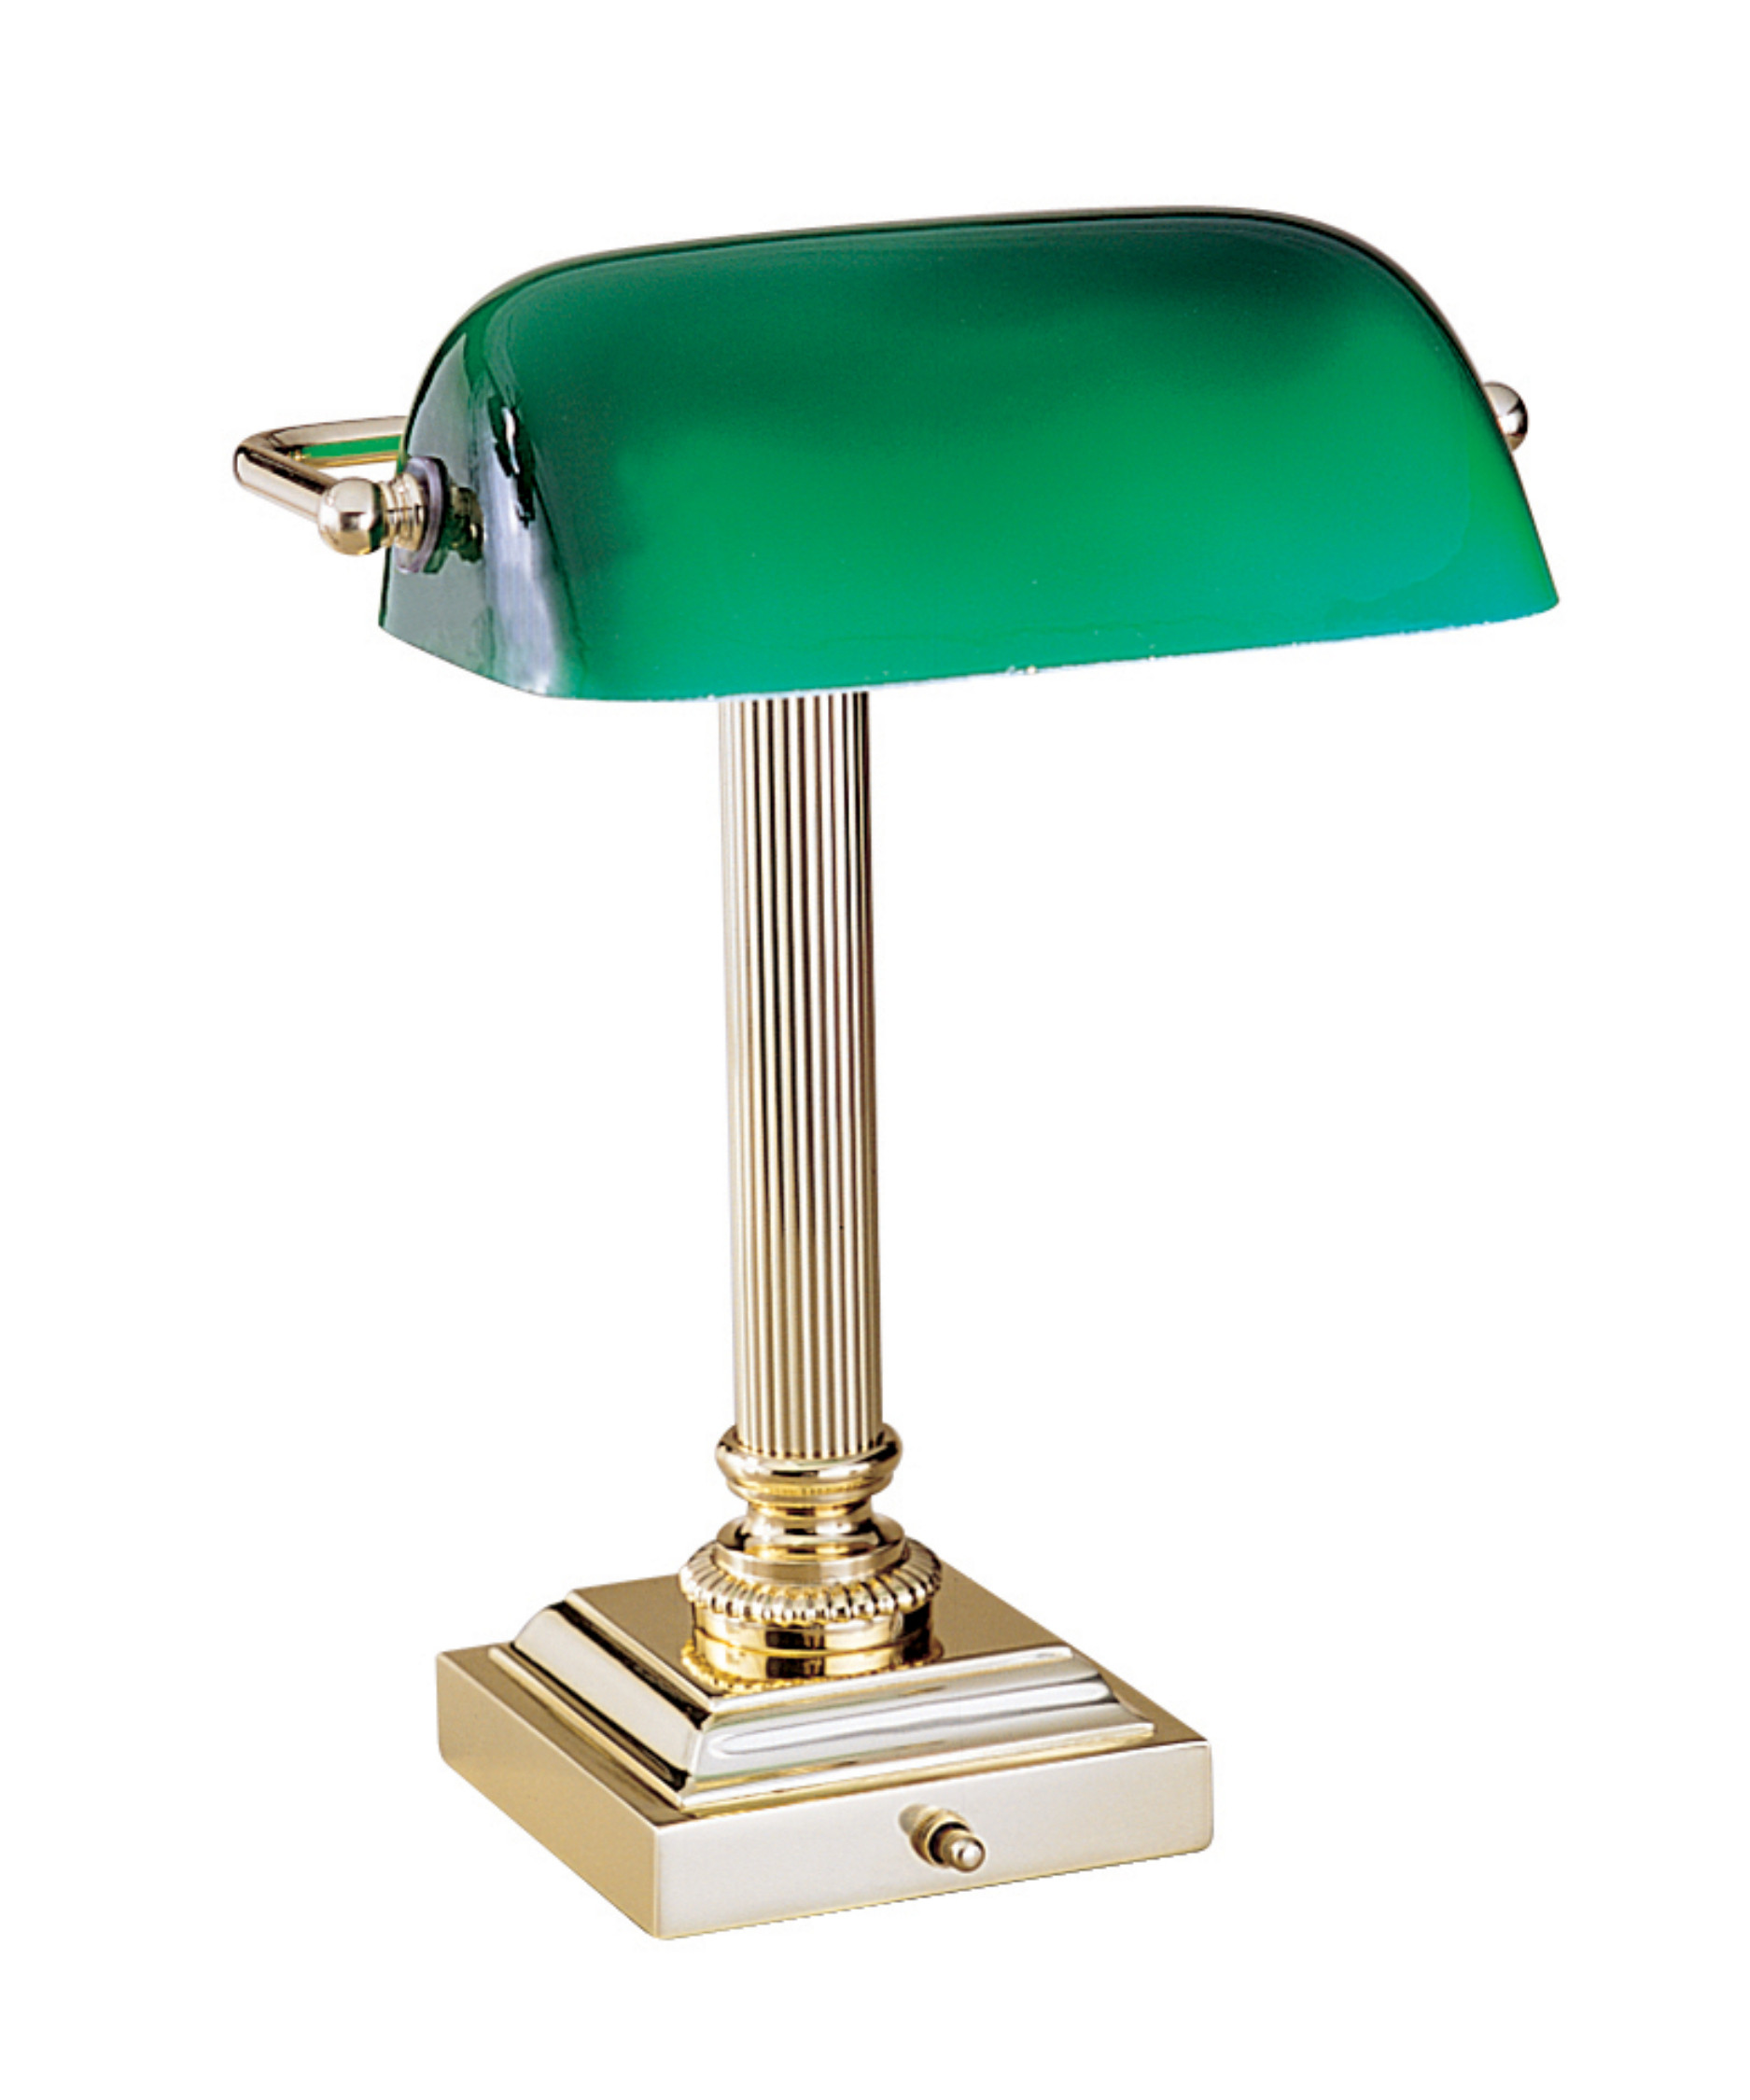 Best ideas about Bed Bath And Beyond Desk Lamp . Save or Pin Bed Bath And Beyond Organizer Desk Lamp Ayresmarcus Now.